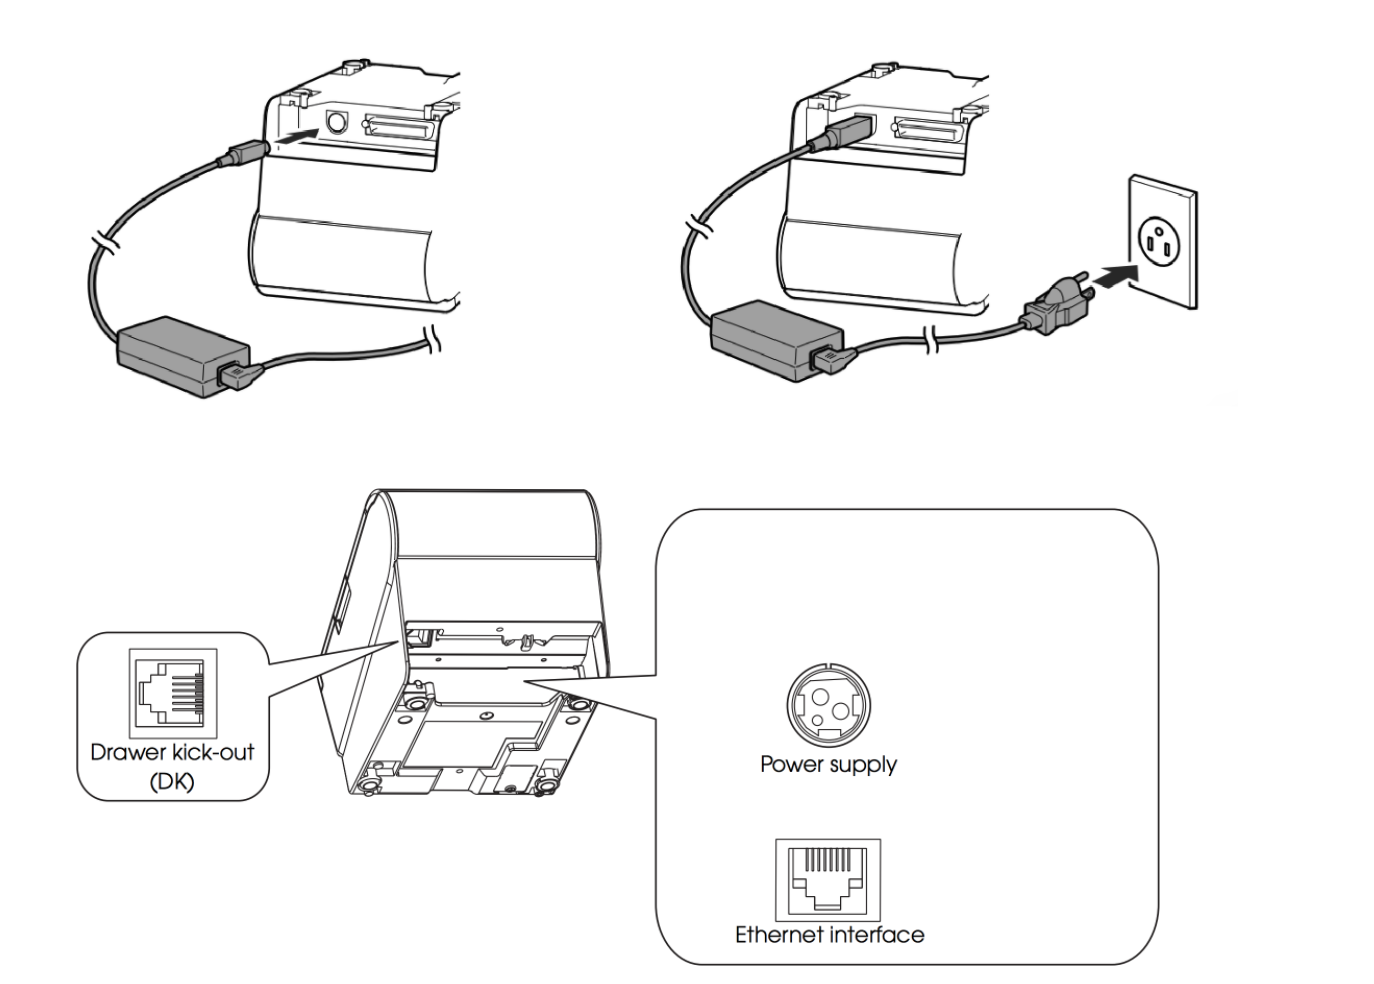 Image_of_printer_power_ports_and_cable.png